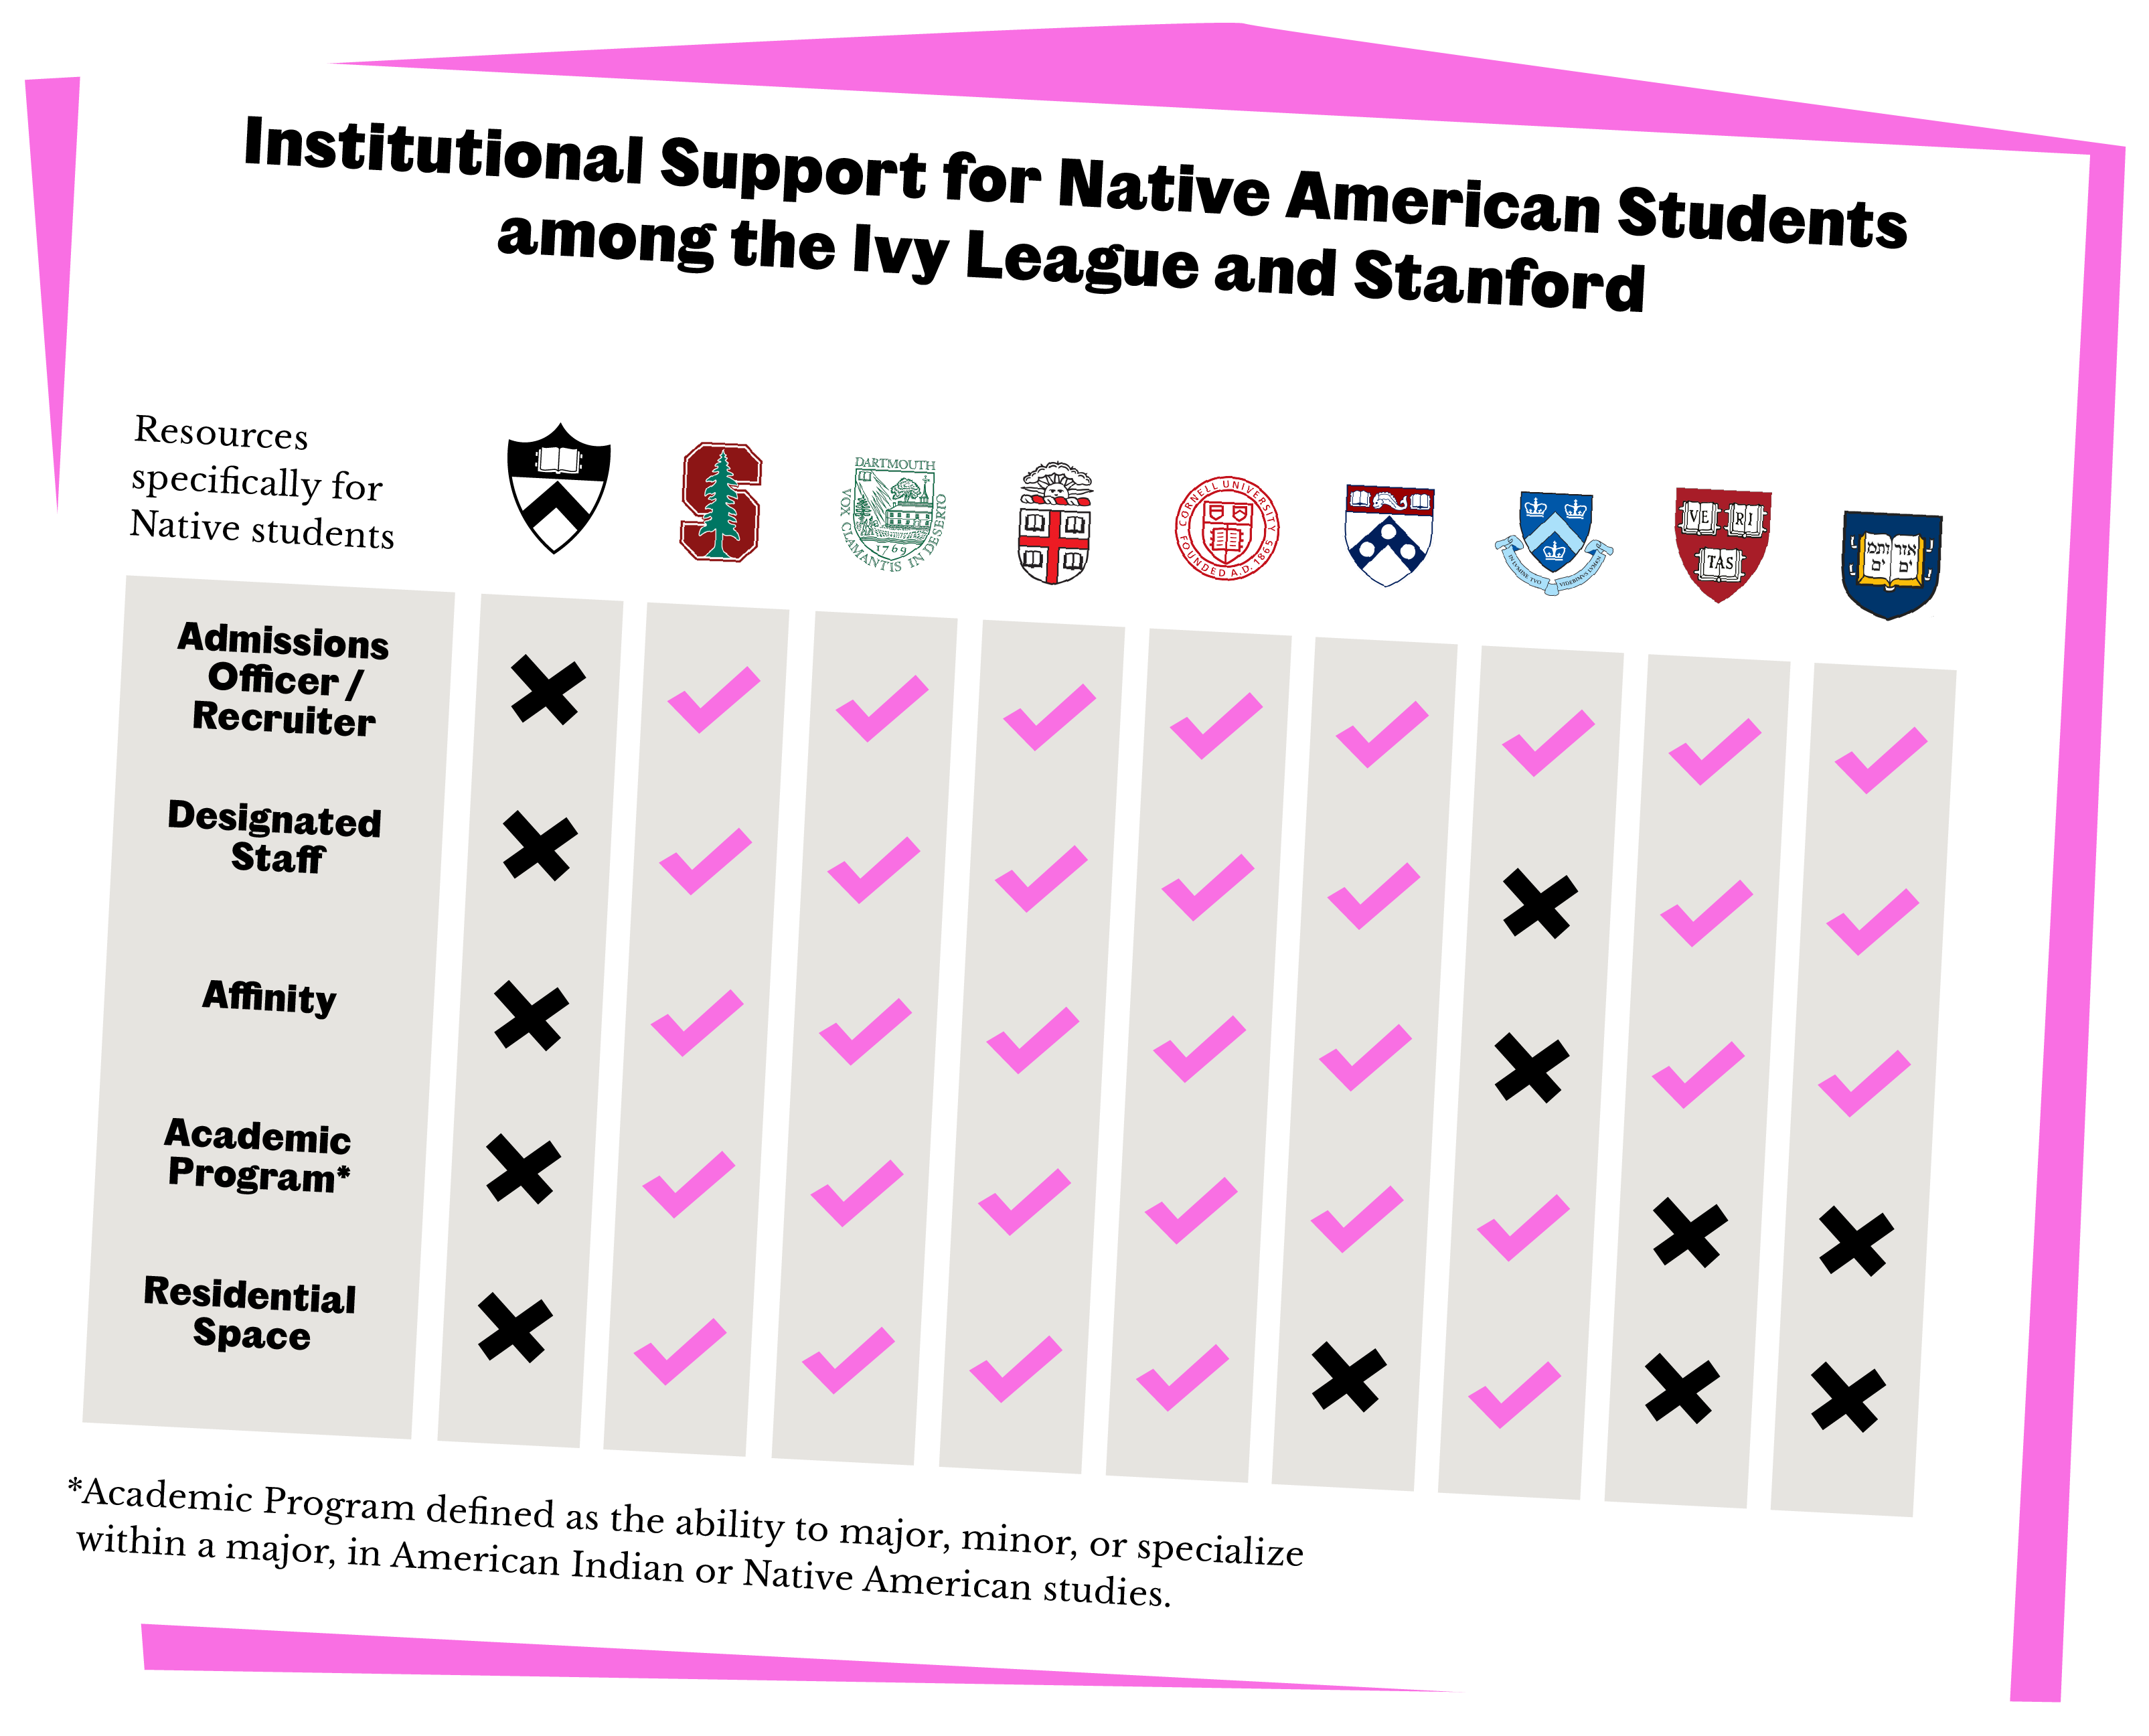 Chart showing the specific resources for Native students that Princeton does not offer, while they are provided by other Ivy League institutions.